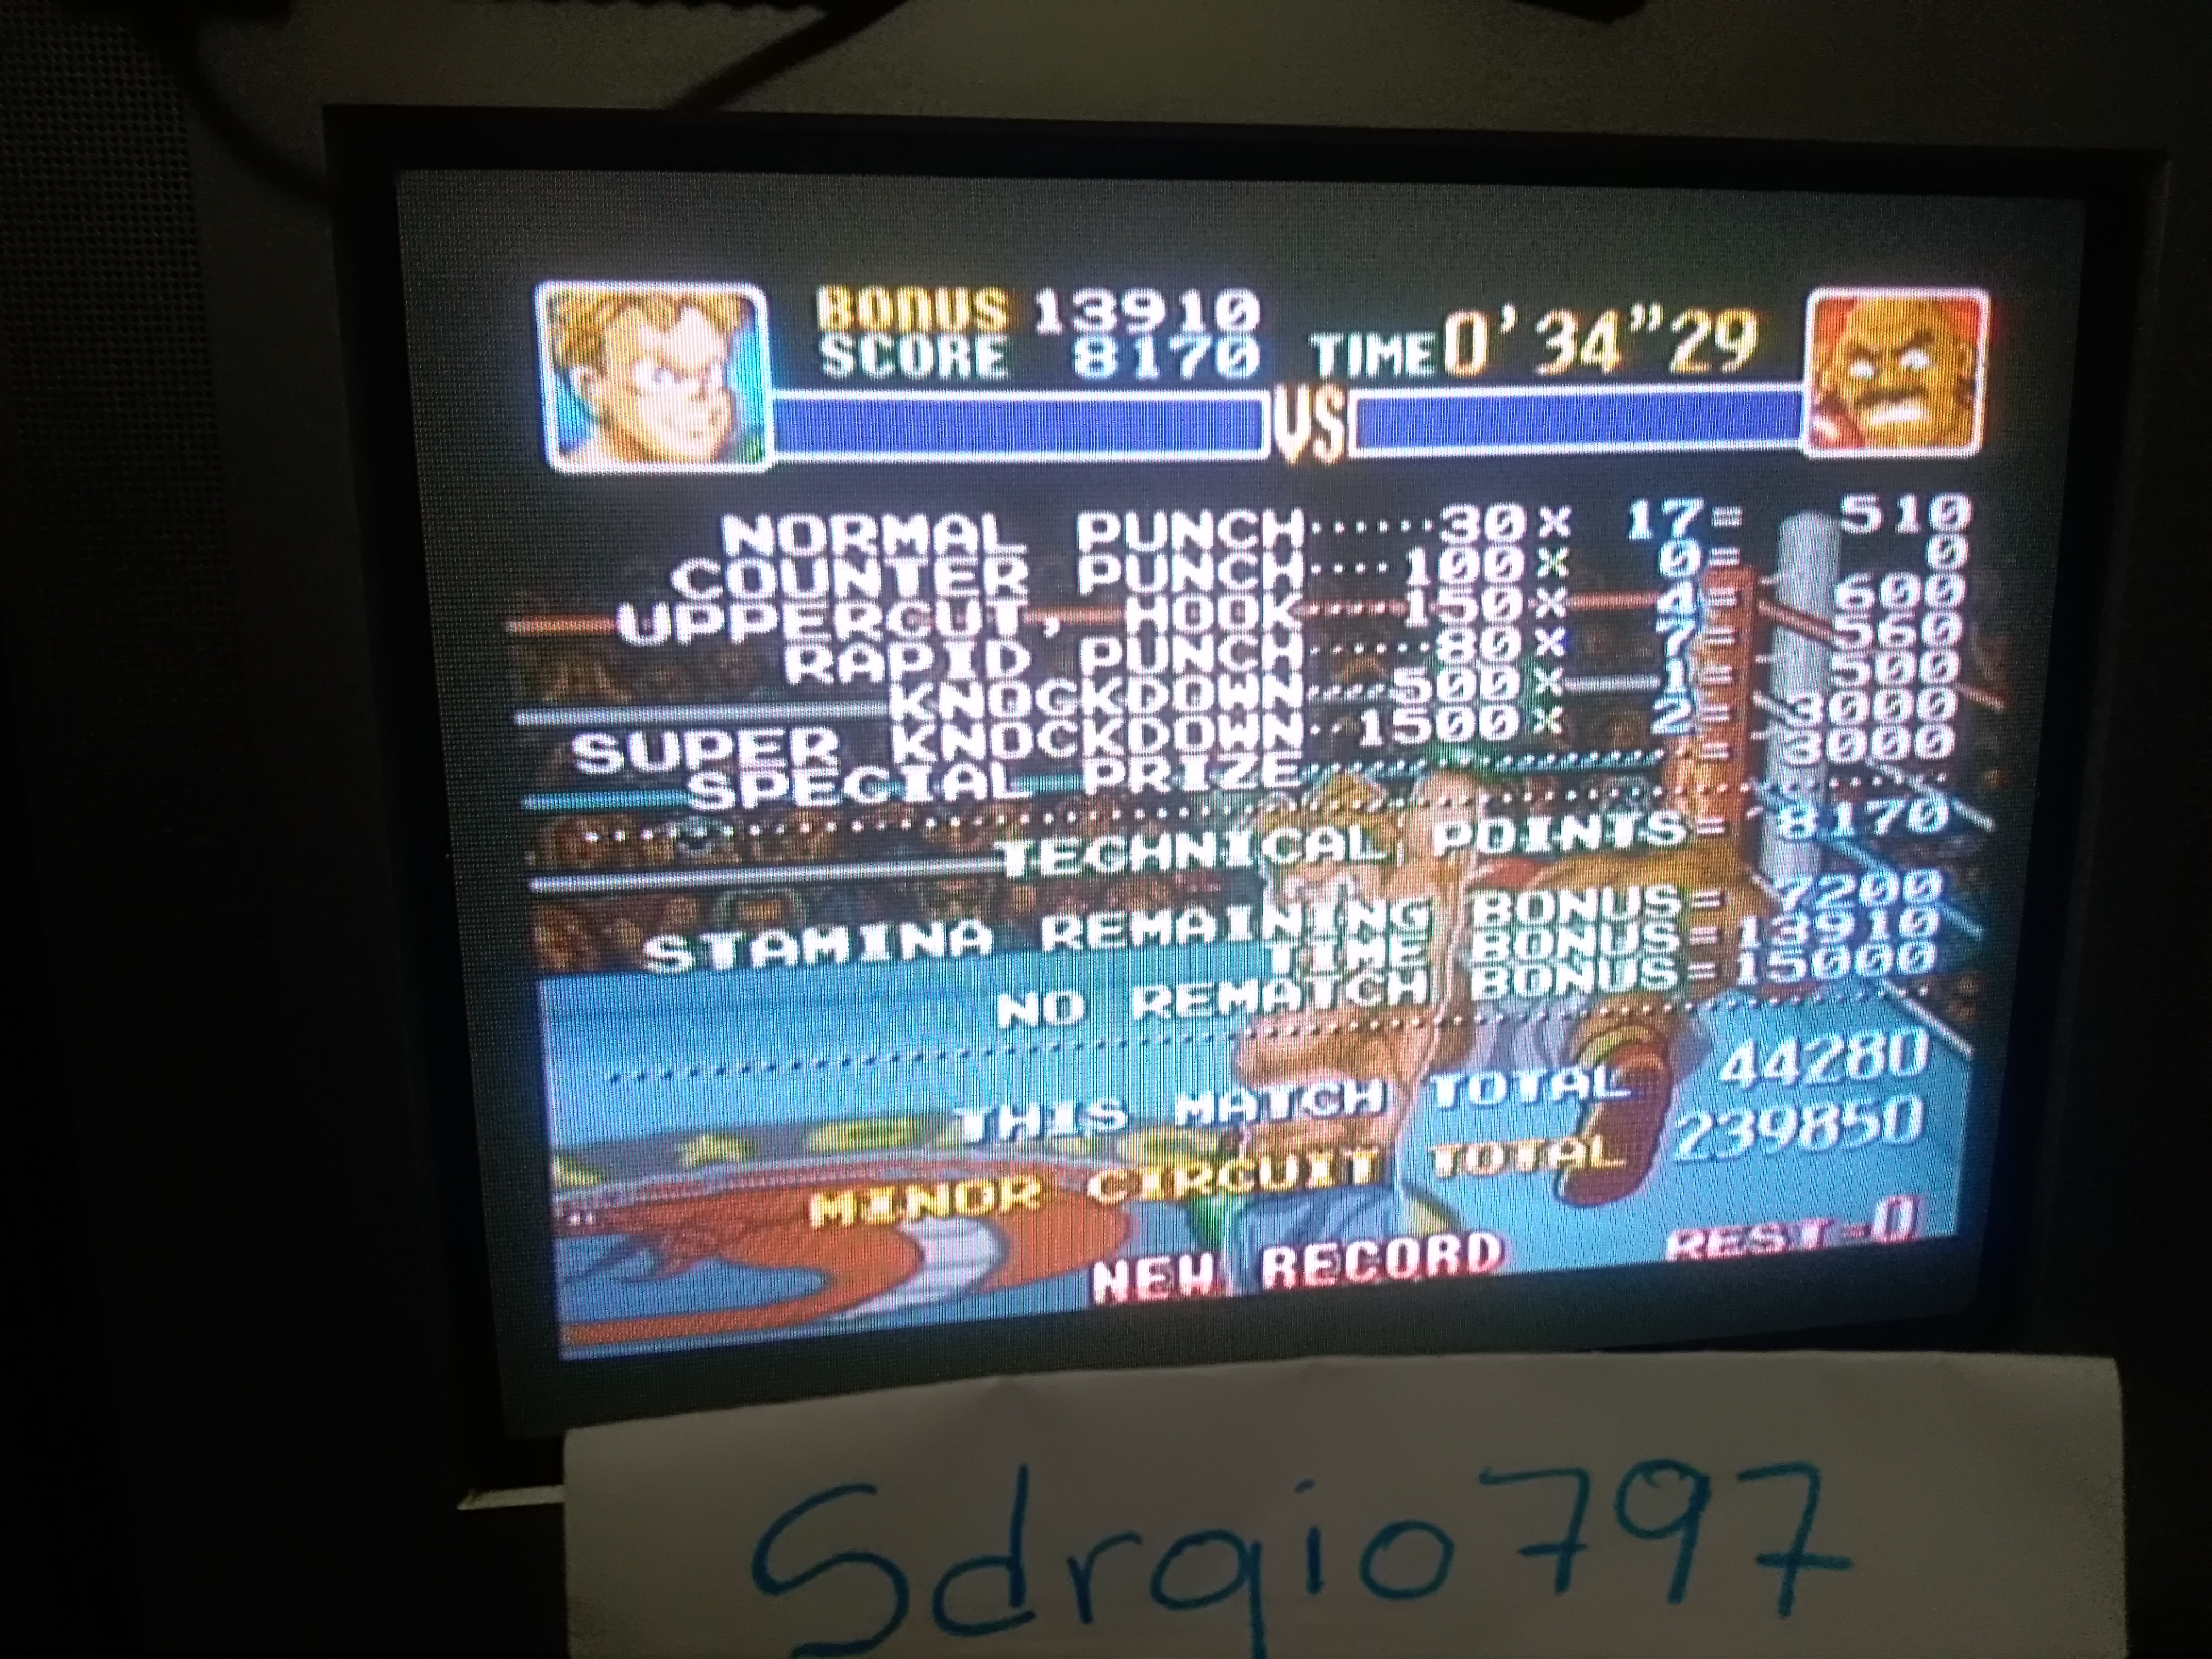 Super Punch-Out!! [Minor Circuit] 239,850 points